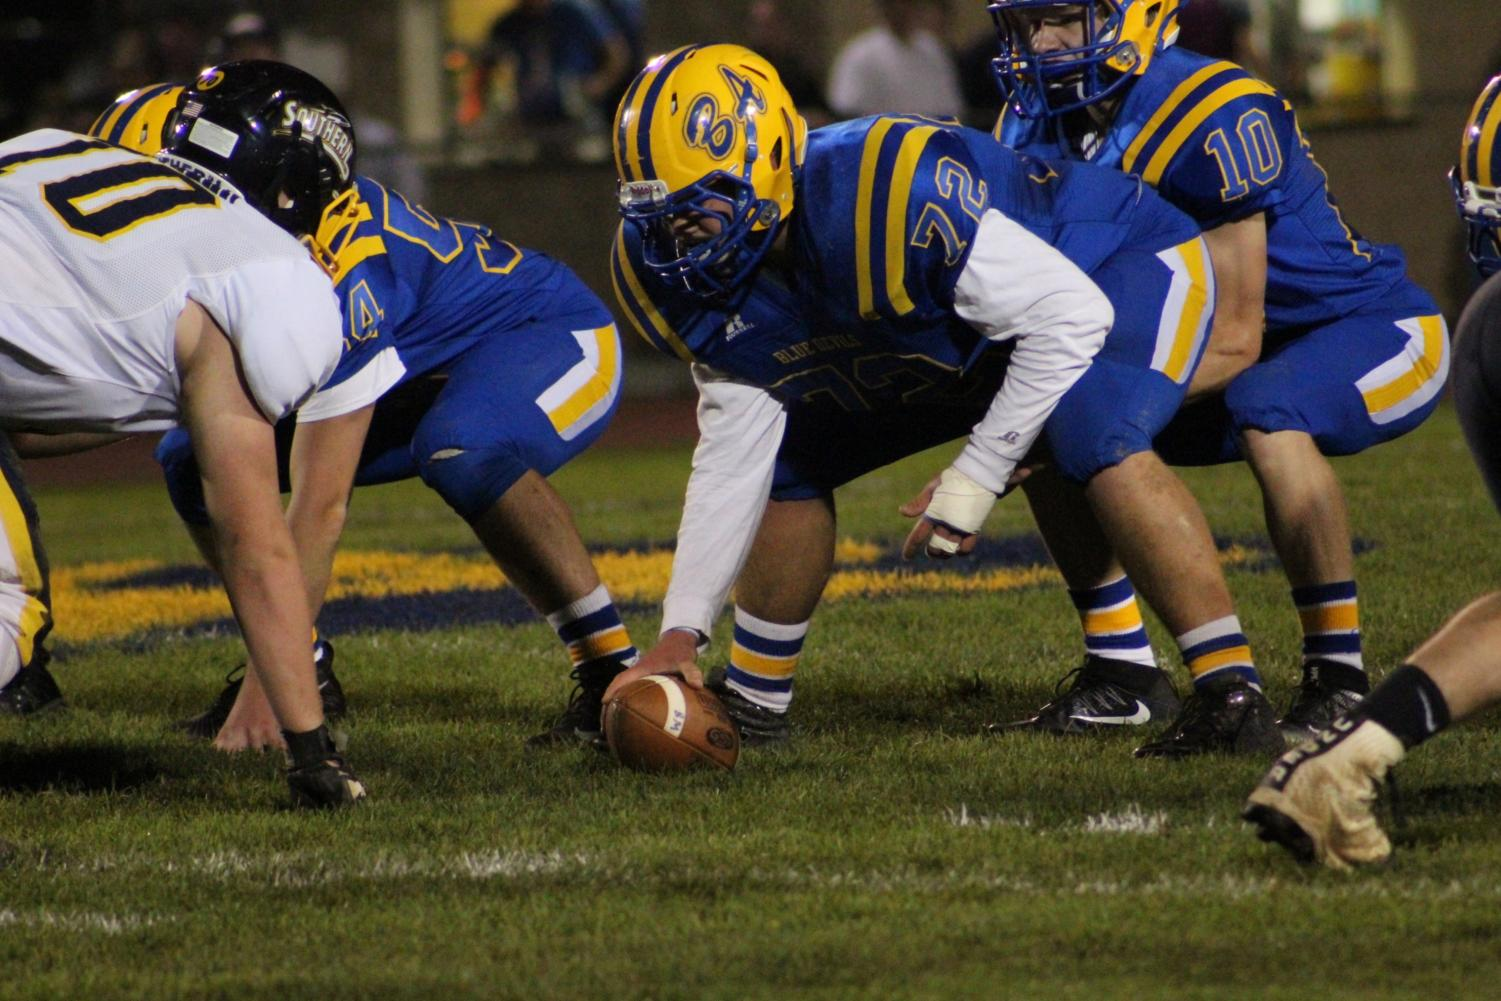 Jack Showalter and the rest of the Devils' talented offensive line will look to keep things going in the District 6 2A playoffs.